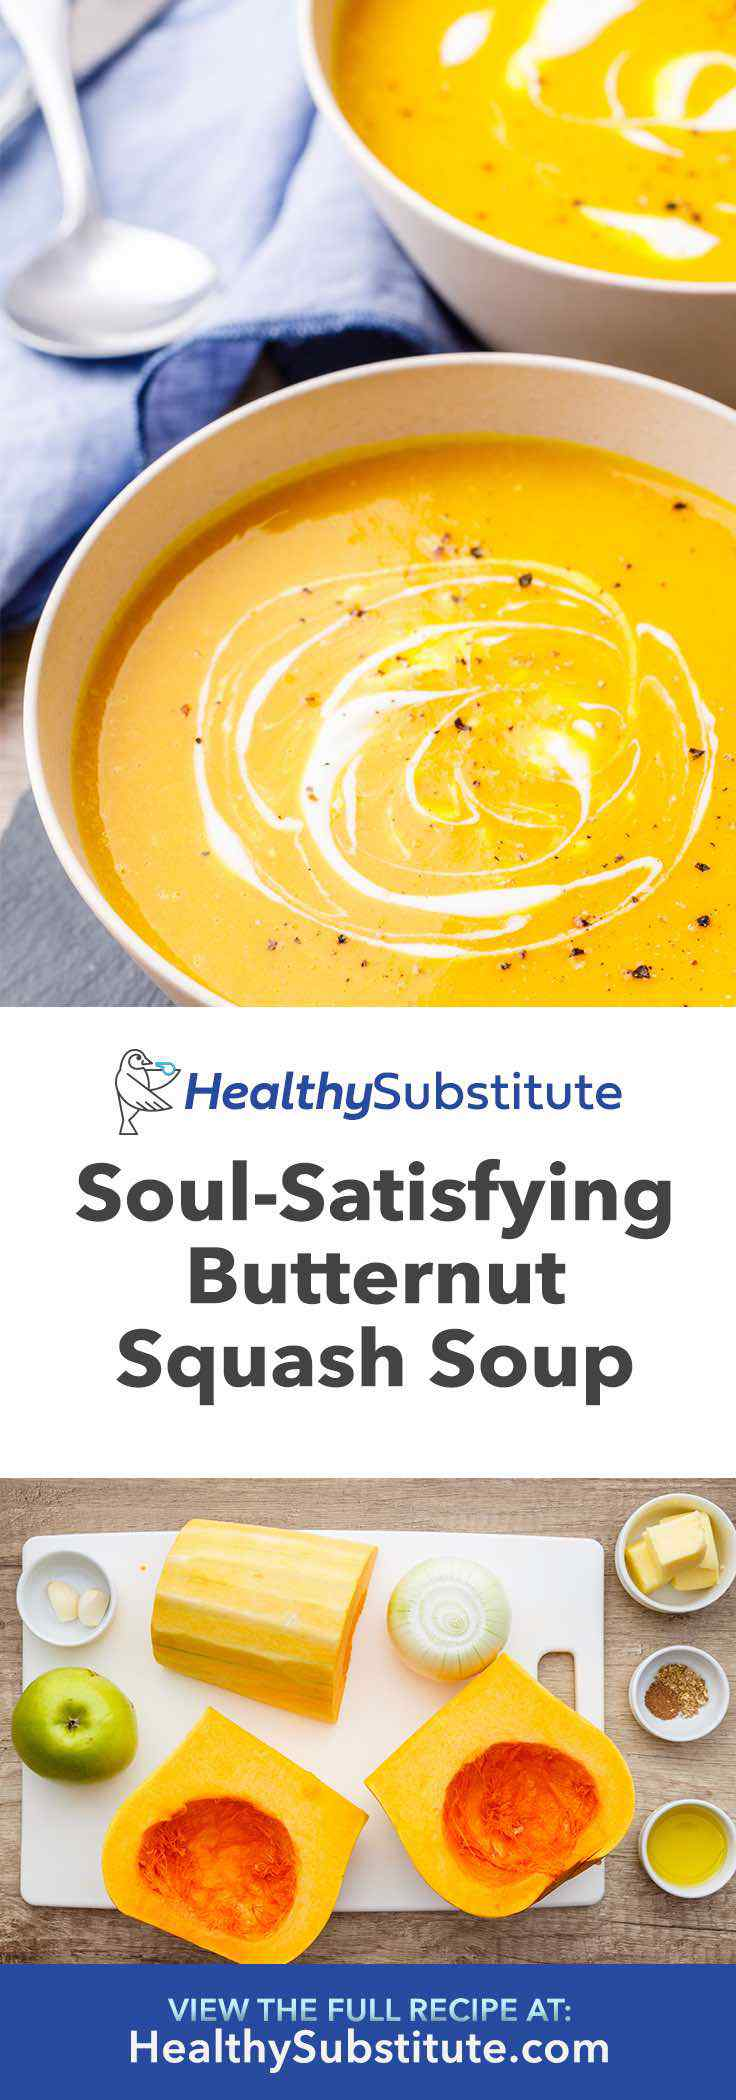 You need to try this incredible butternut squash soup!